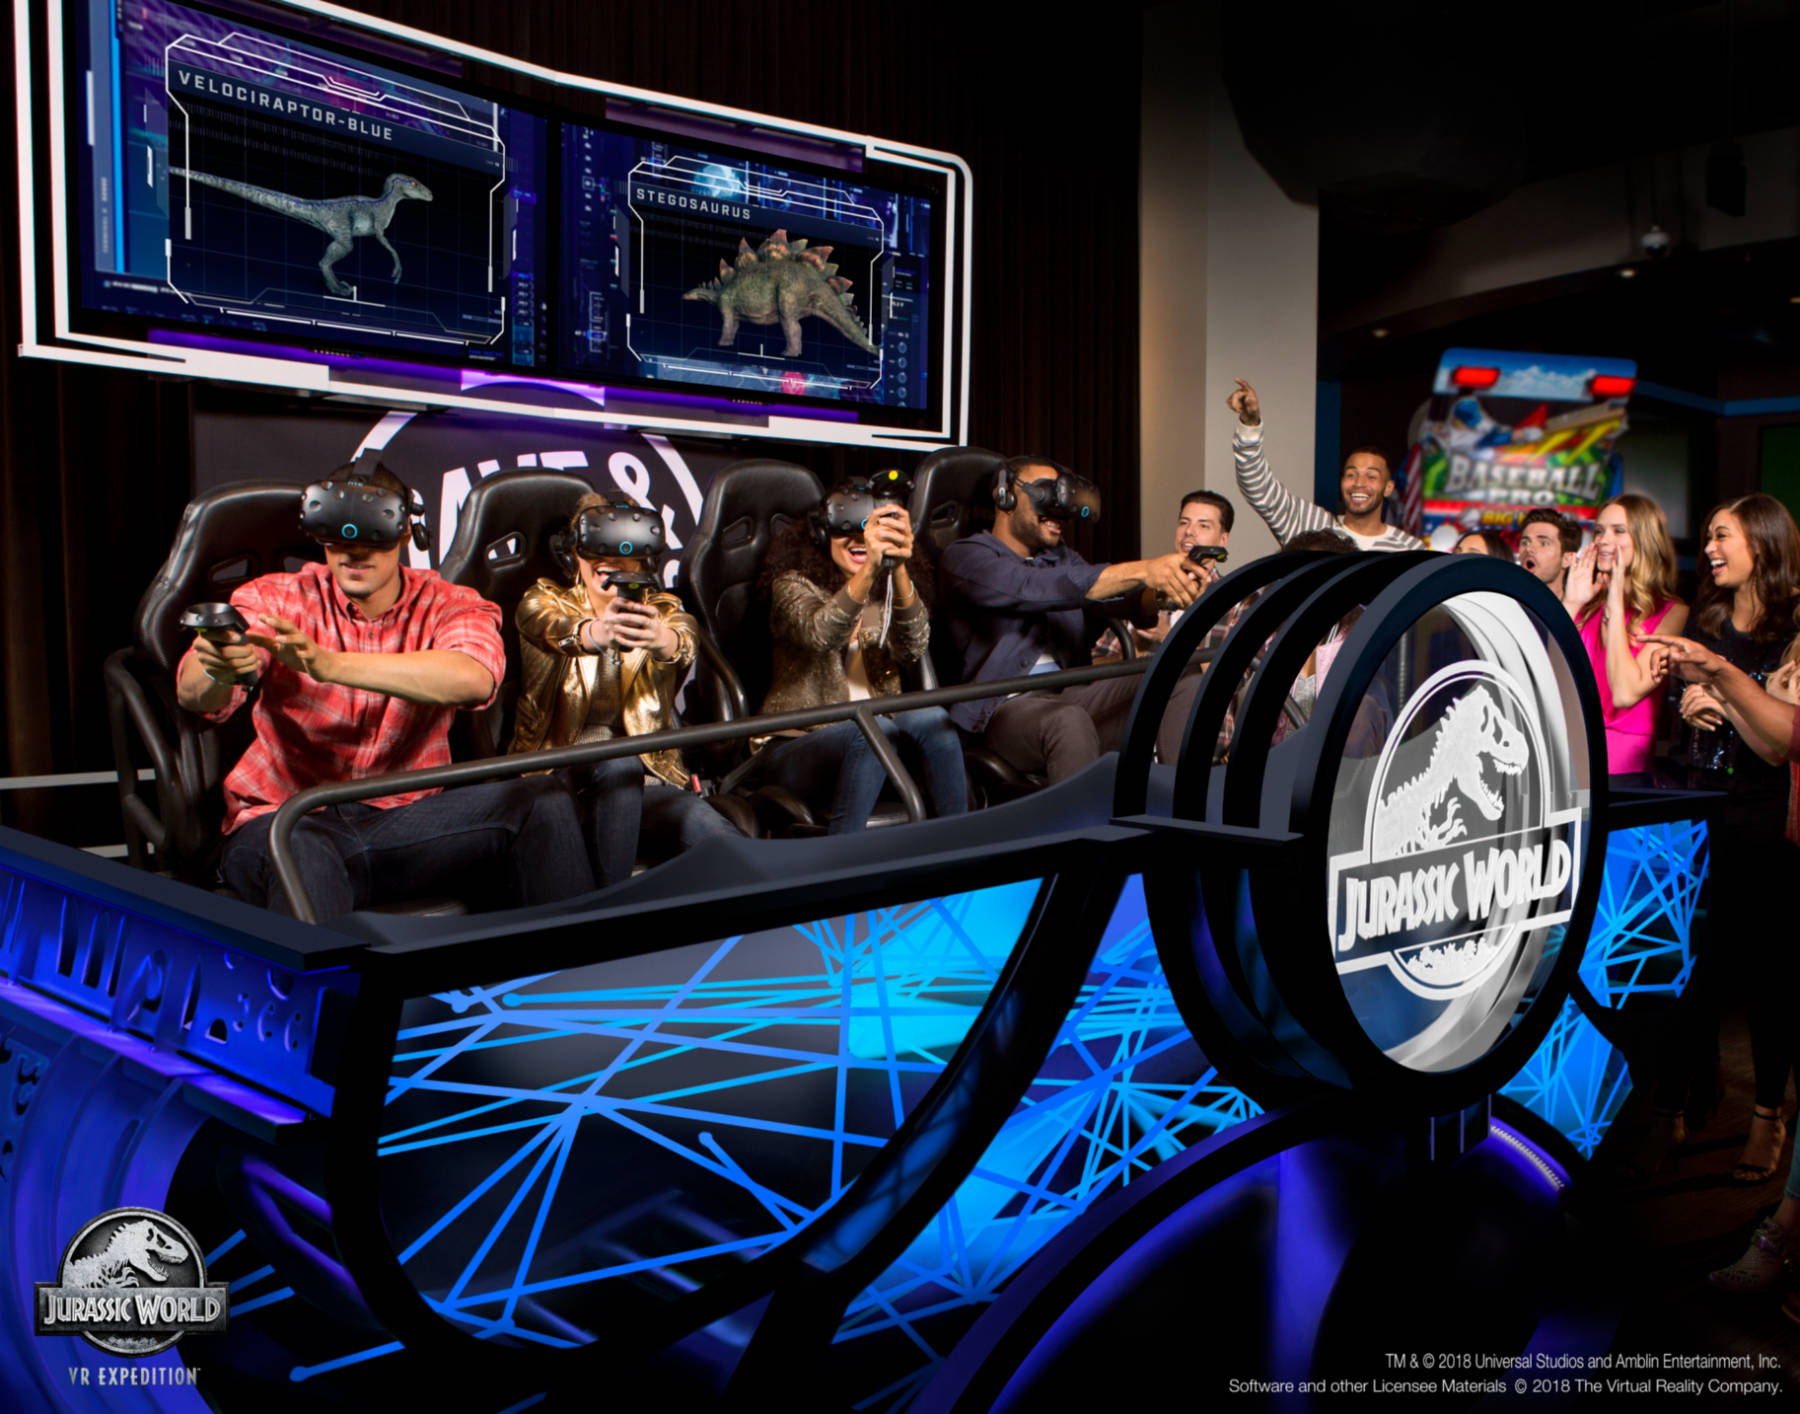 New Jurassic World Vr Game To Debut At Dave Amp Buster S